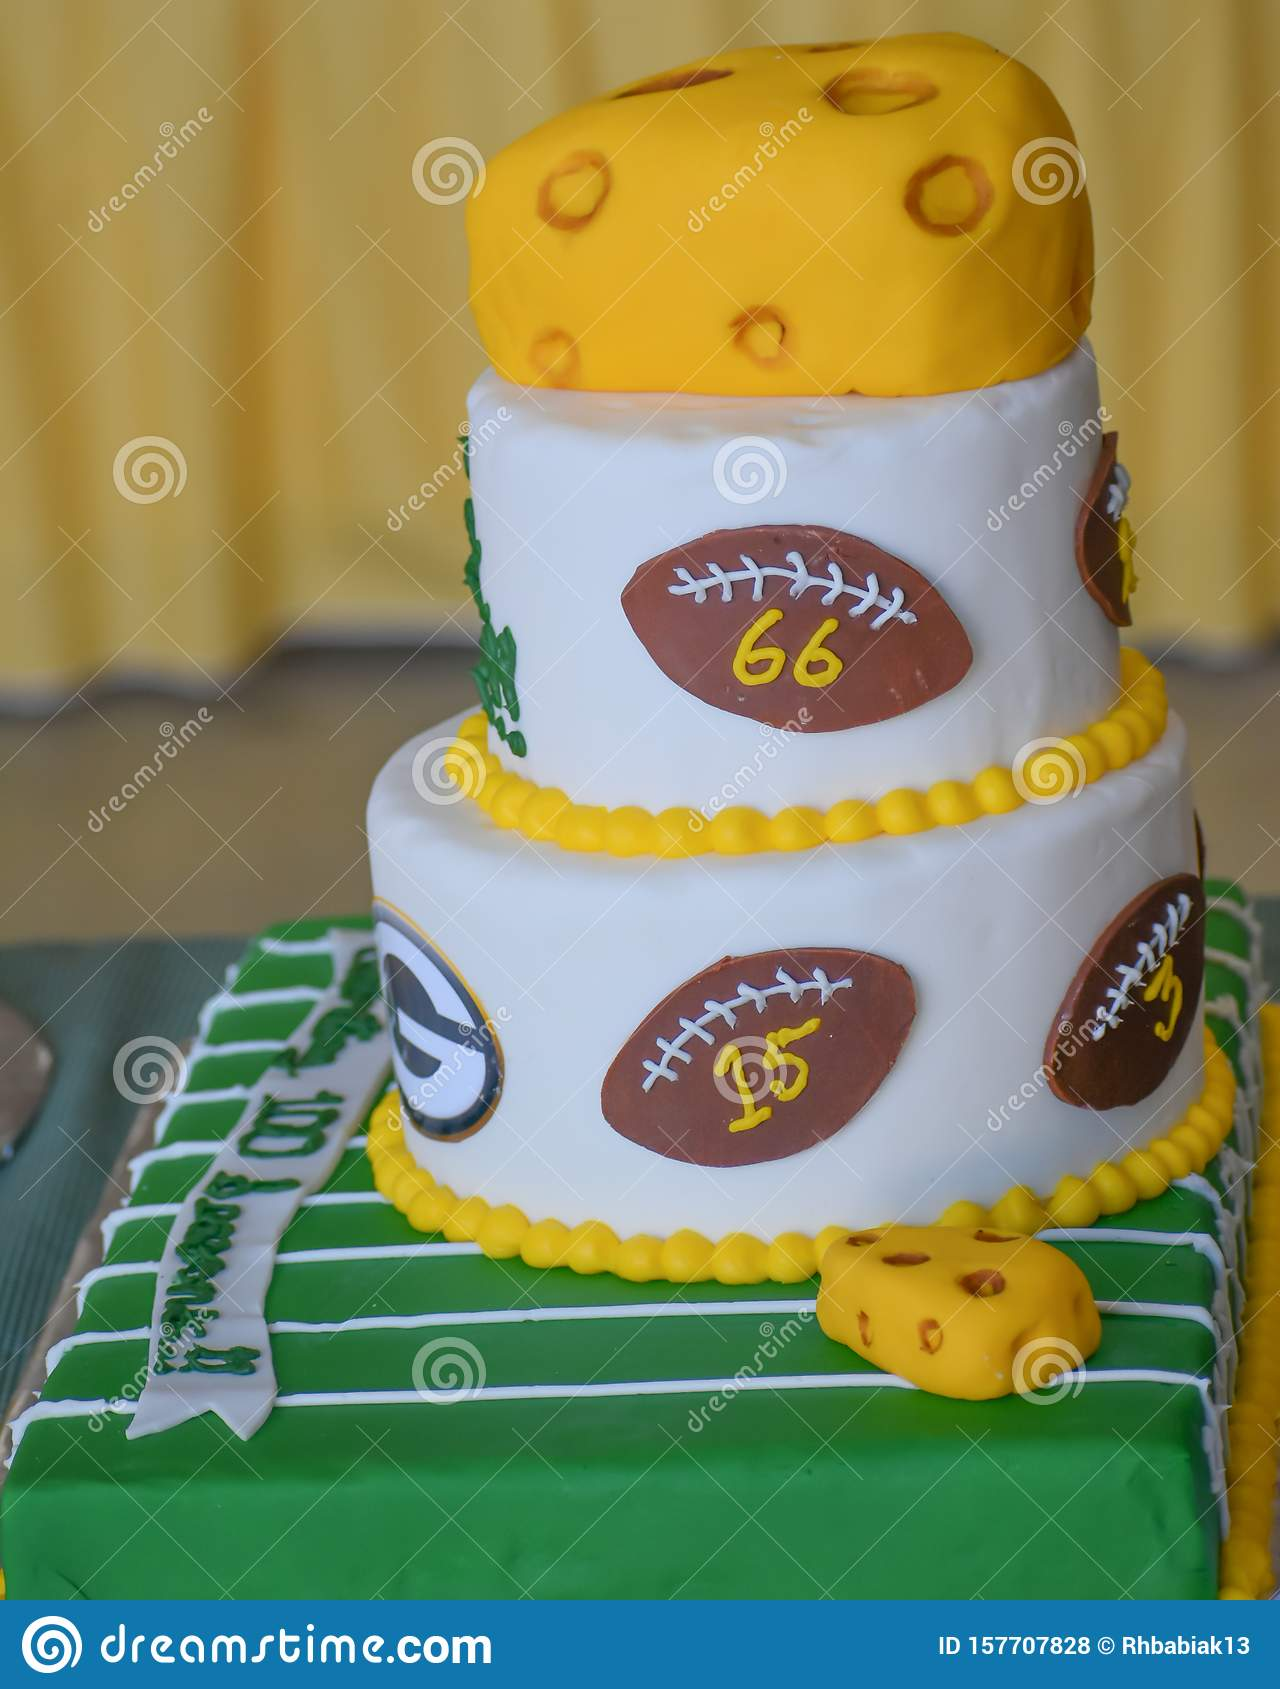 Green Bay Packers Football Cake With Cheese Editorial Stock Photo Image Of Packers Confectioners 157707828